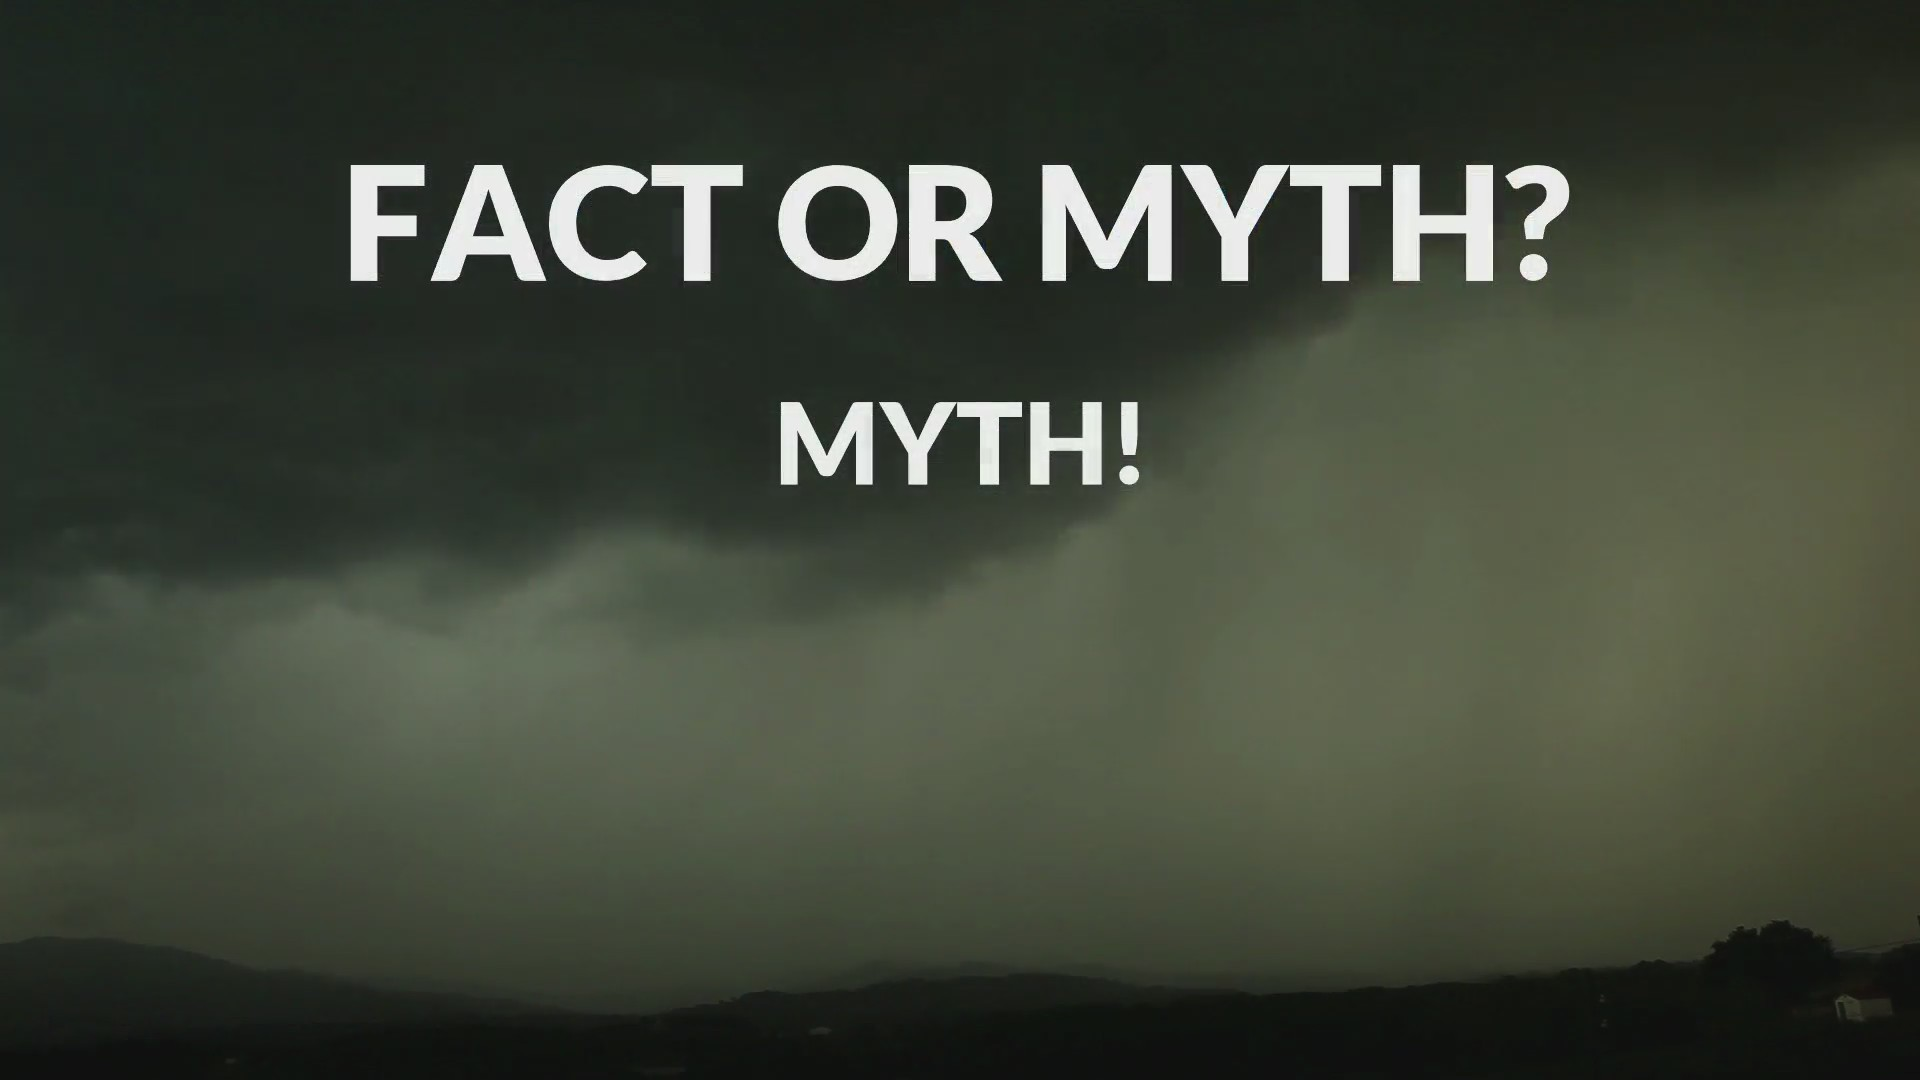 Weather Ready Nation Report: Tornado Myths vs. Facts